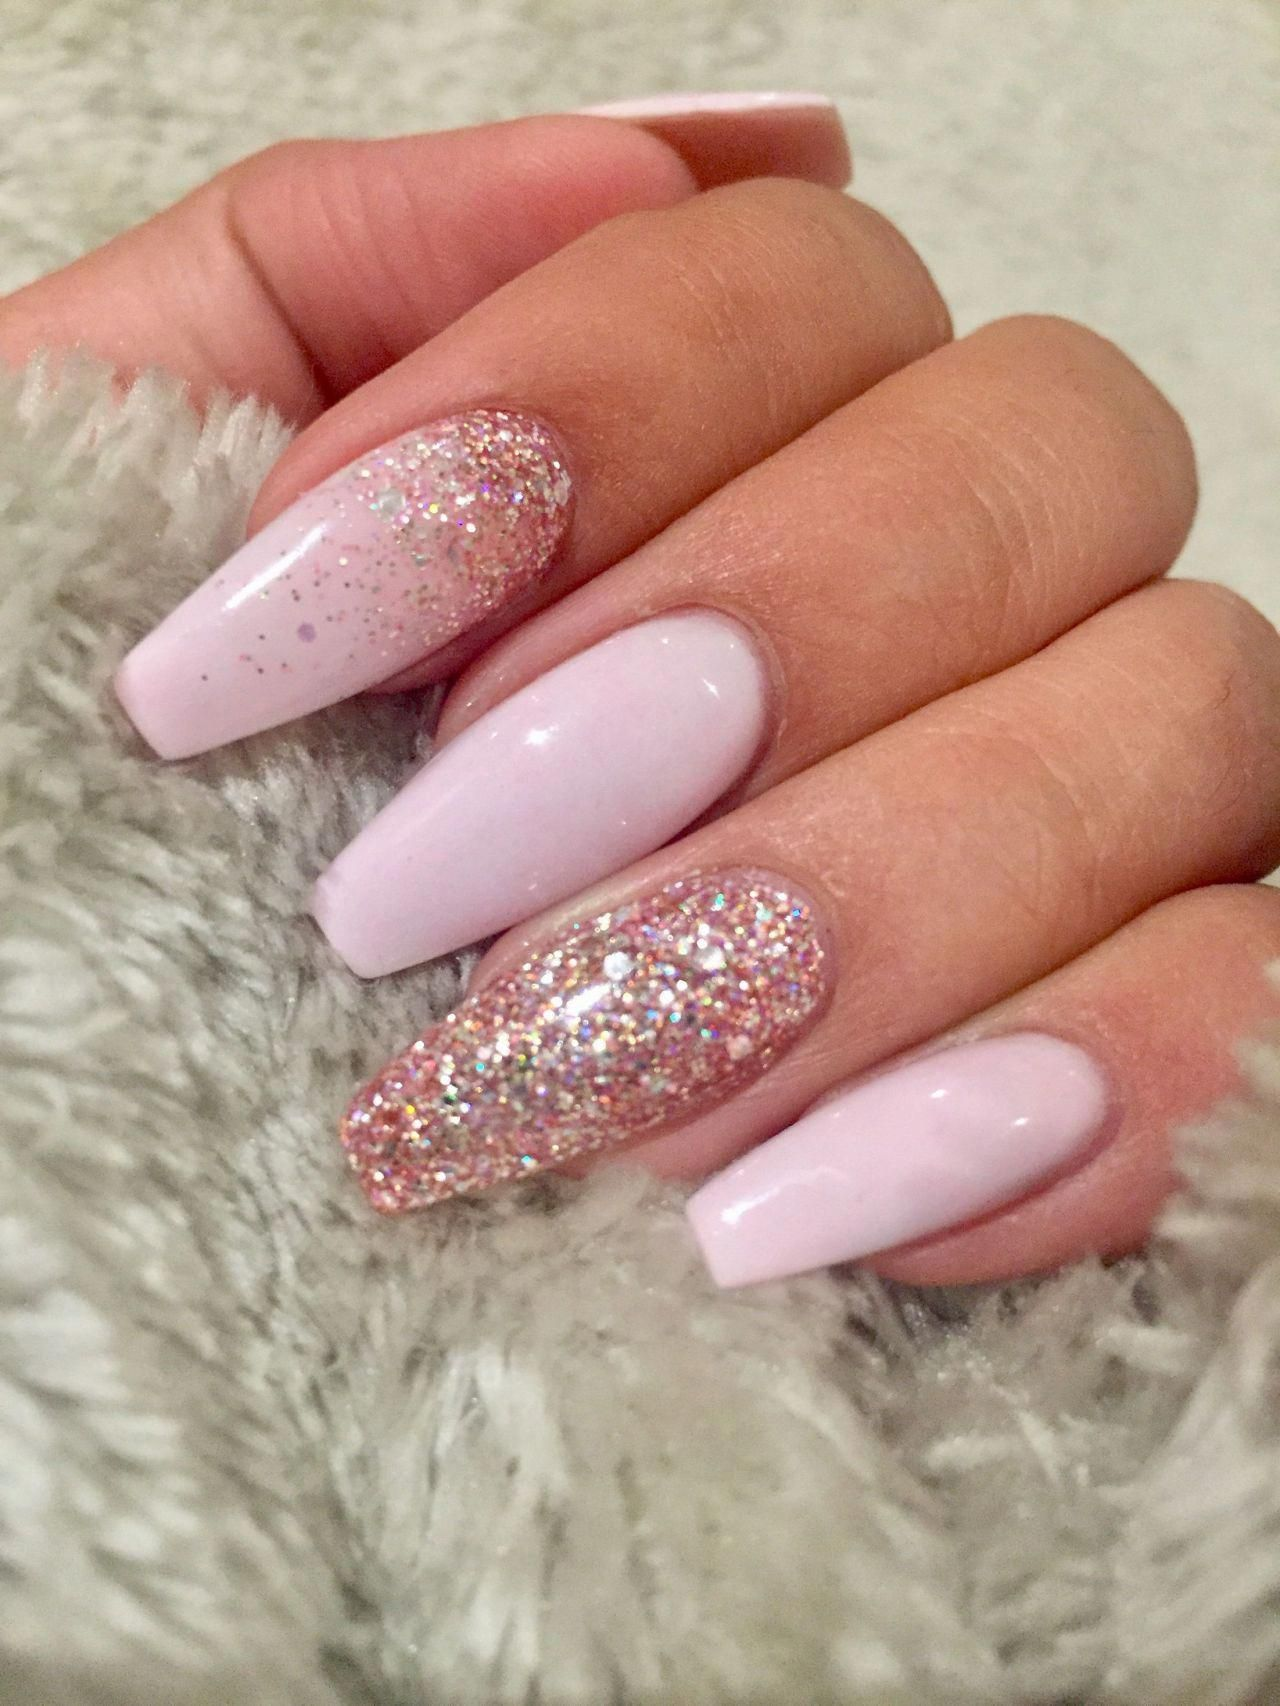 55 Example Of Pretty Nails Design Acrylics Glitter Sparkle 43 Bloggeratho Light Pink Acrylic Nails Nails Design With Rhinestones Pretty Nail Designs Acrylics